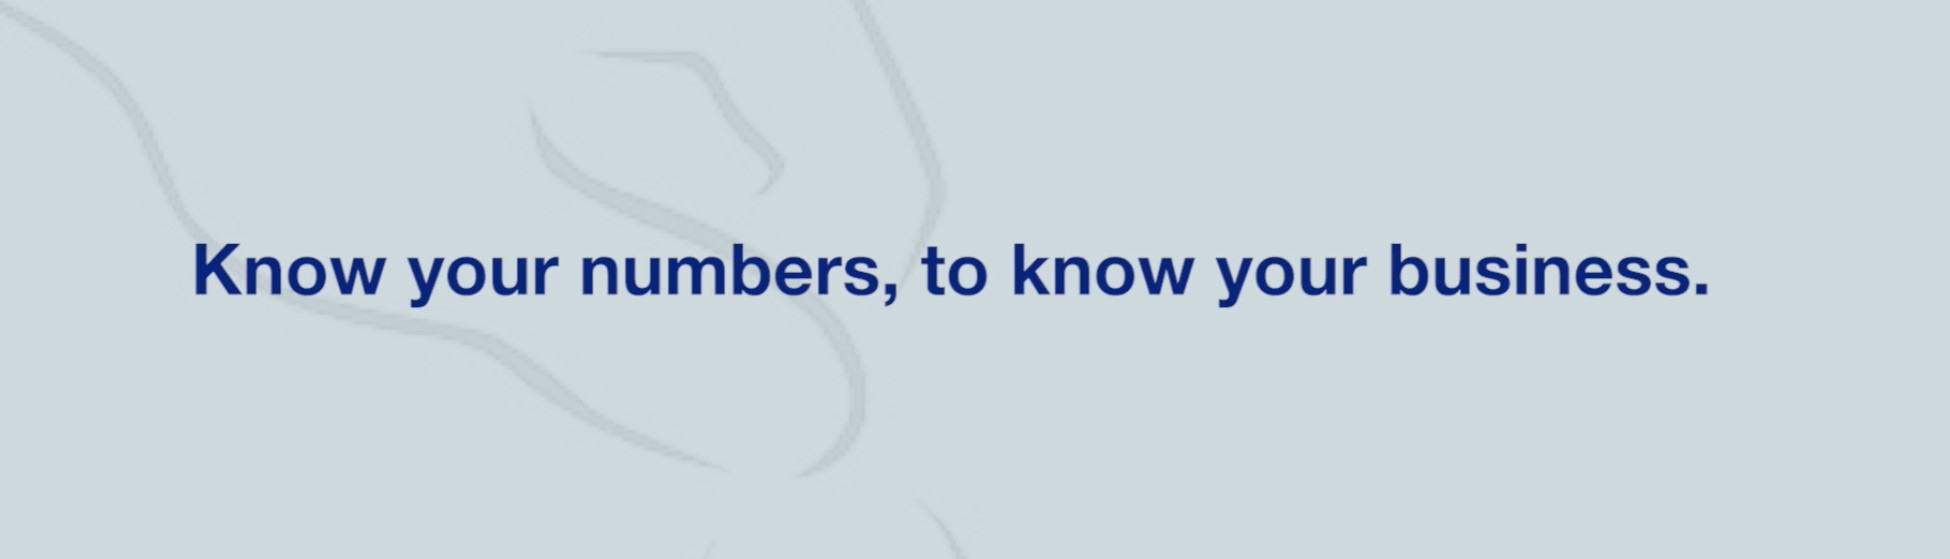 Know your numbers, to know your business.